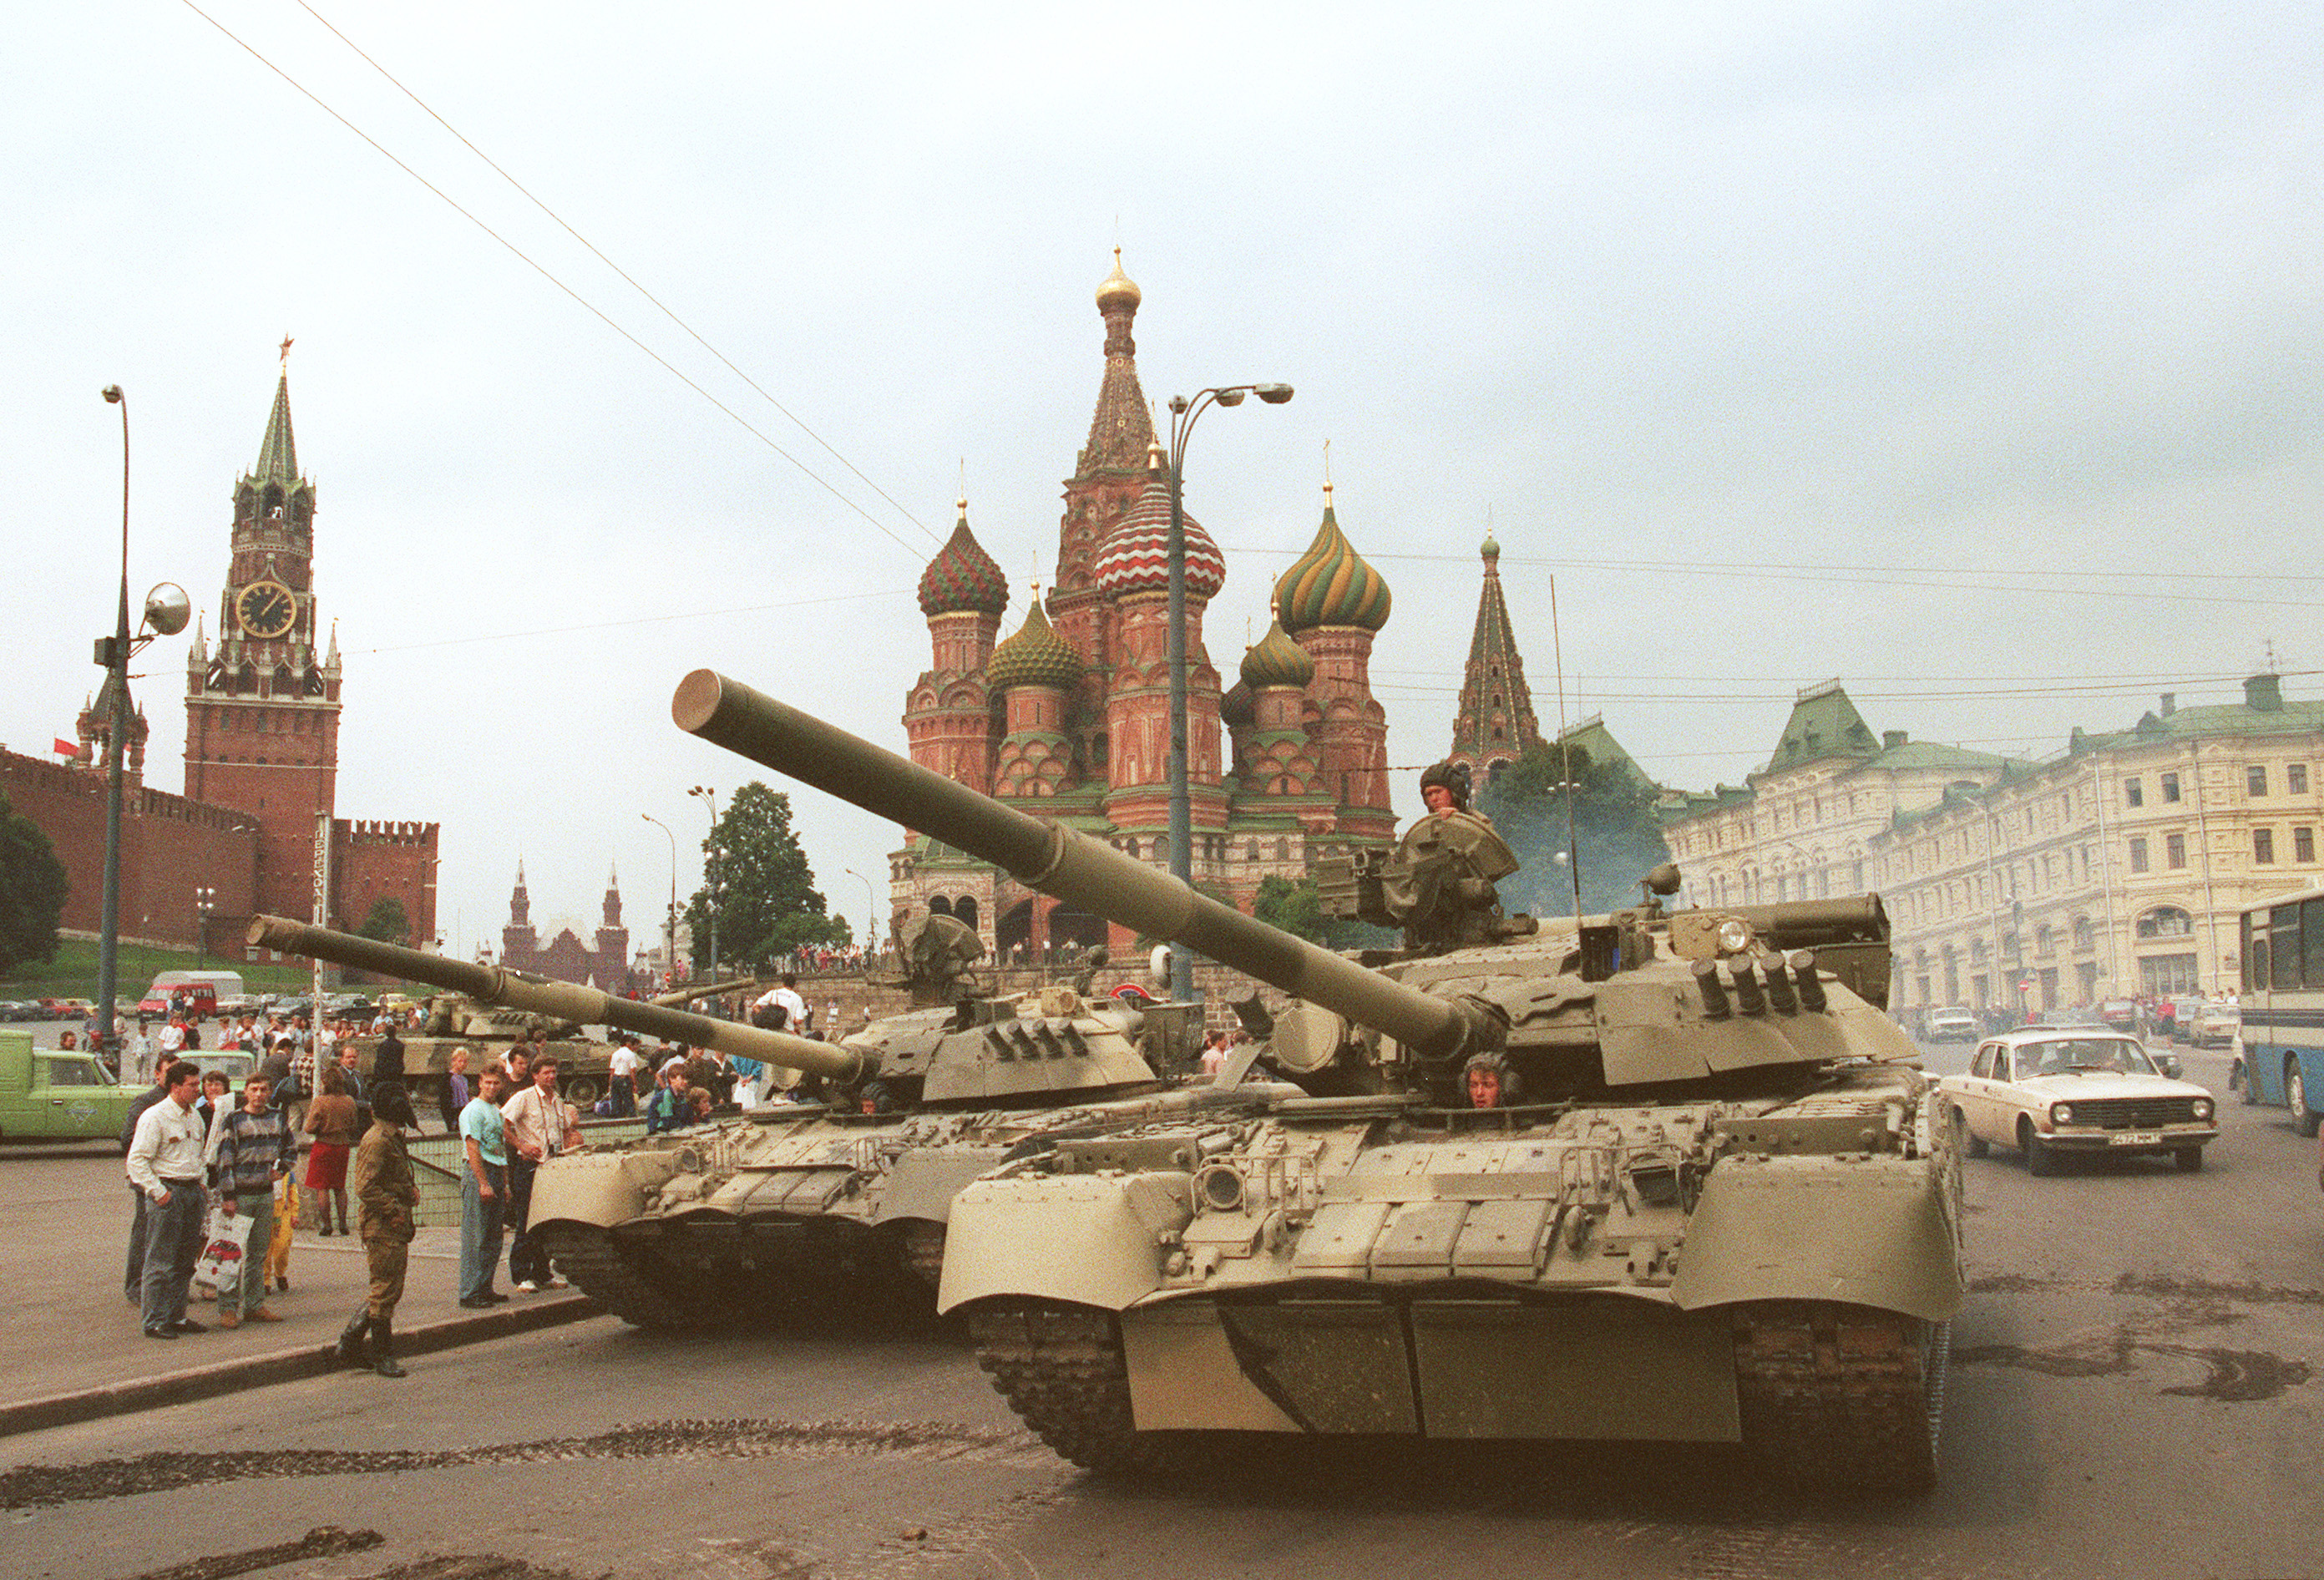 1991 coup in Russia